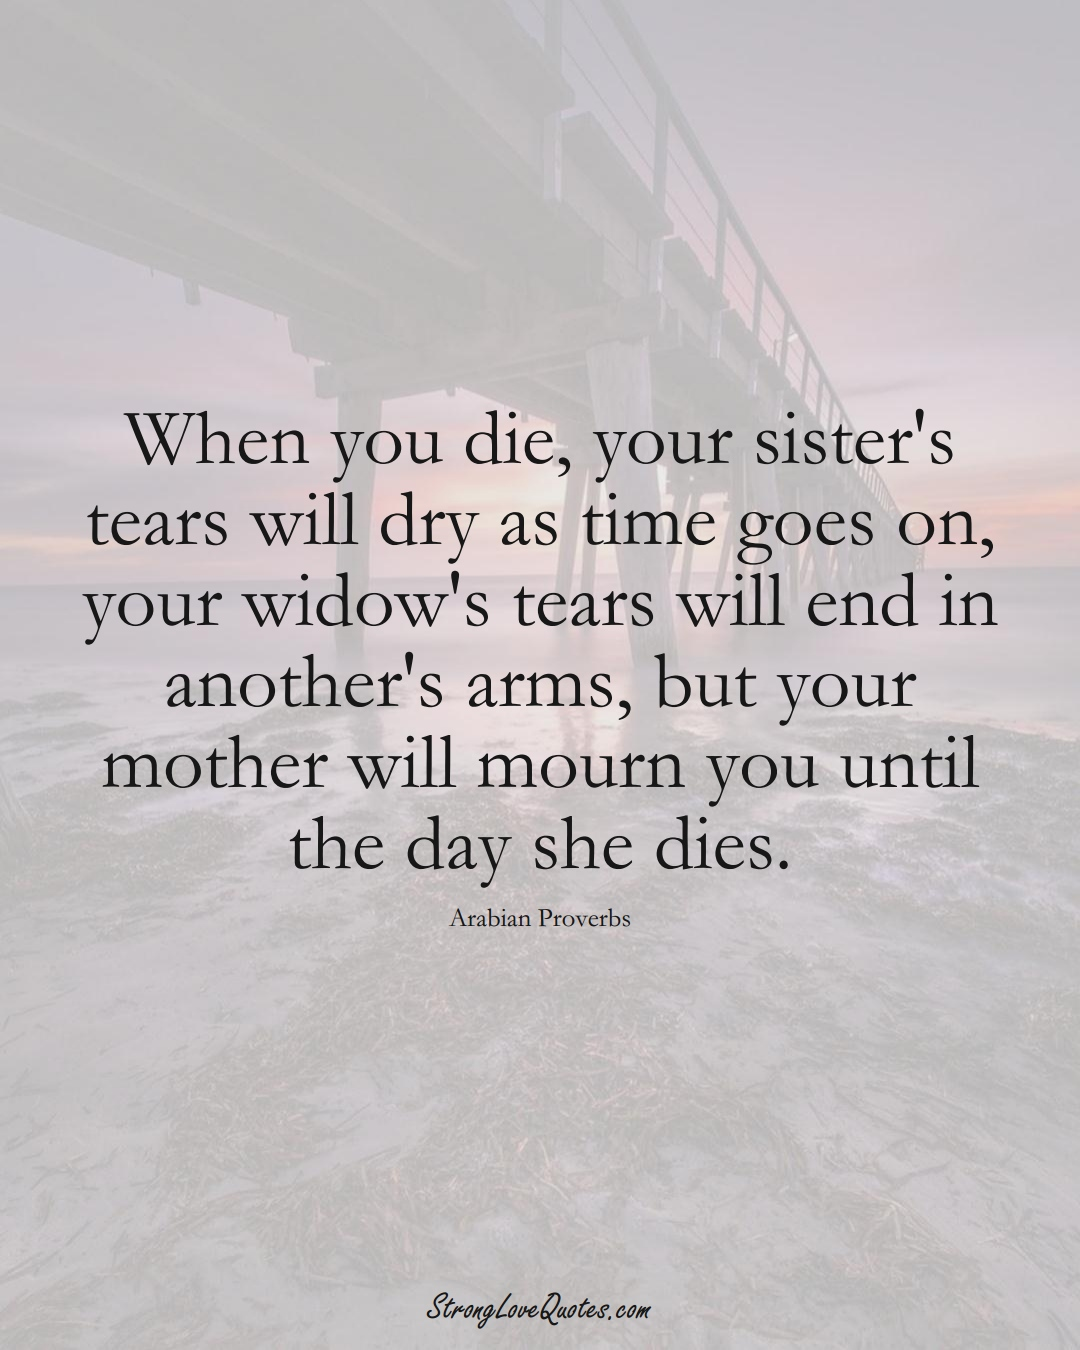 When you die, your sister's tears will dry as time goes on, your widow's tears will end in another's arms, but your mother will mourn you until the day she dies. (Arabian Sayings);  #aVarietyofCulturesSayings